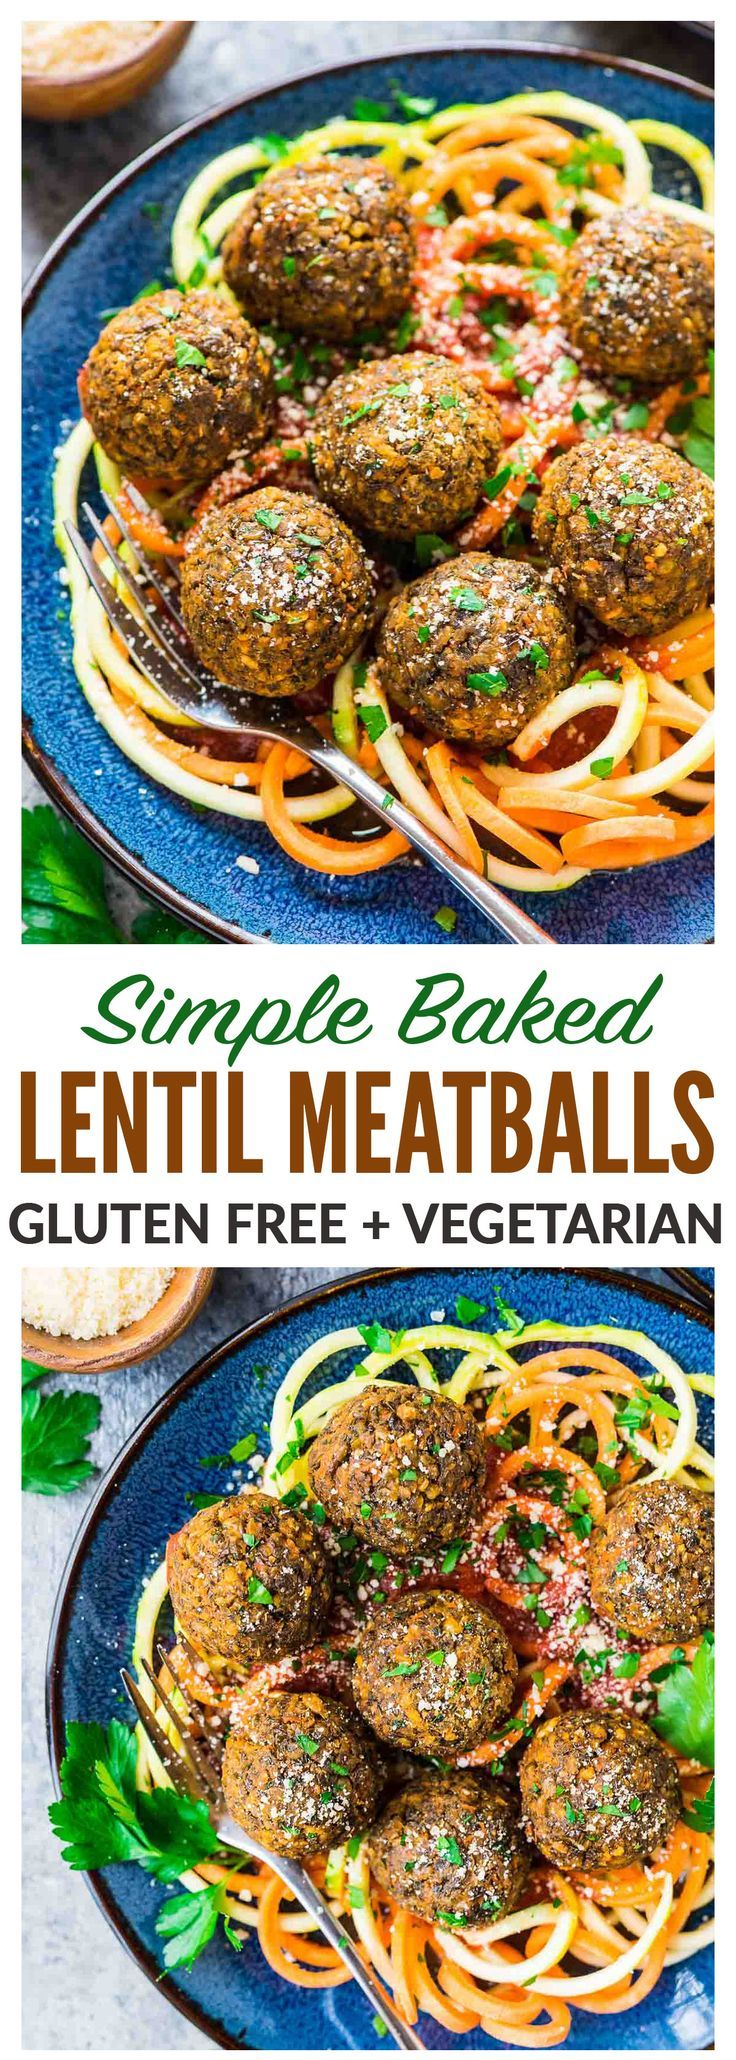 Easy Vegetarian Lentil Meatballs - Simple, healthy and protein packed! Made with lentils, carrots, and Italian spices, then oven baked. Perfect for filling meatless meals, and they taste great leftover too! {gluten free} Recipe at wellplated.com | @wellplated